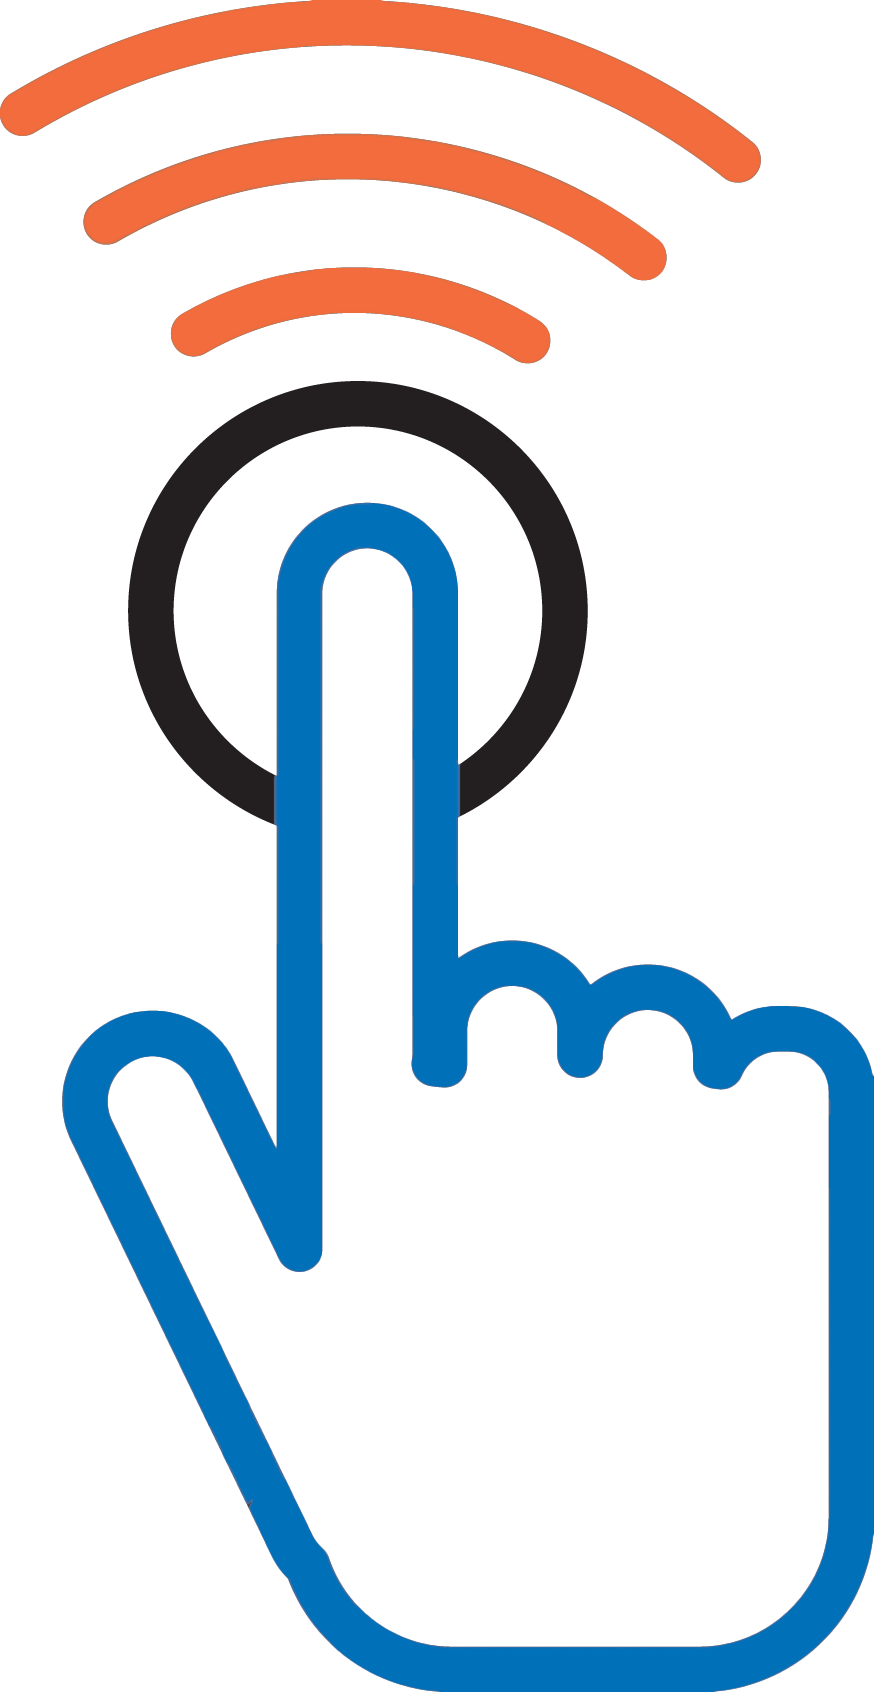 Icon of a finger pushing a button to represent wireless nurse call